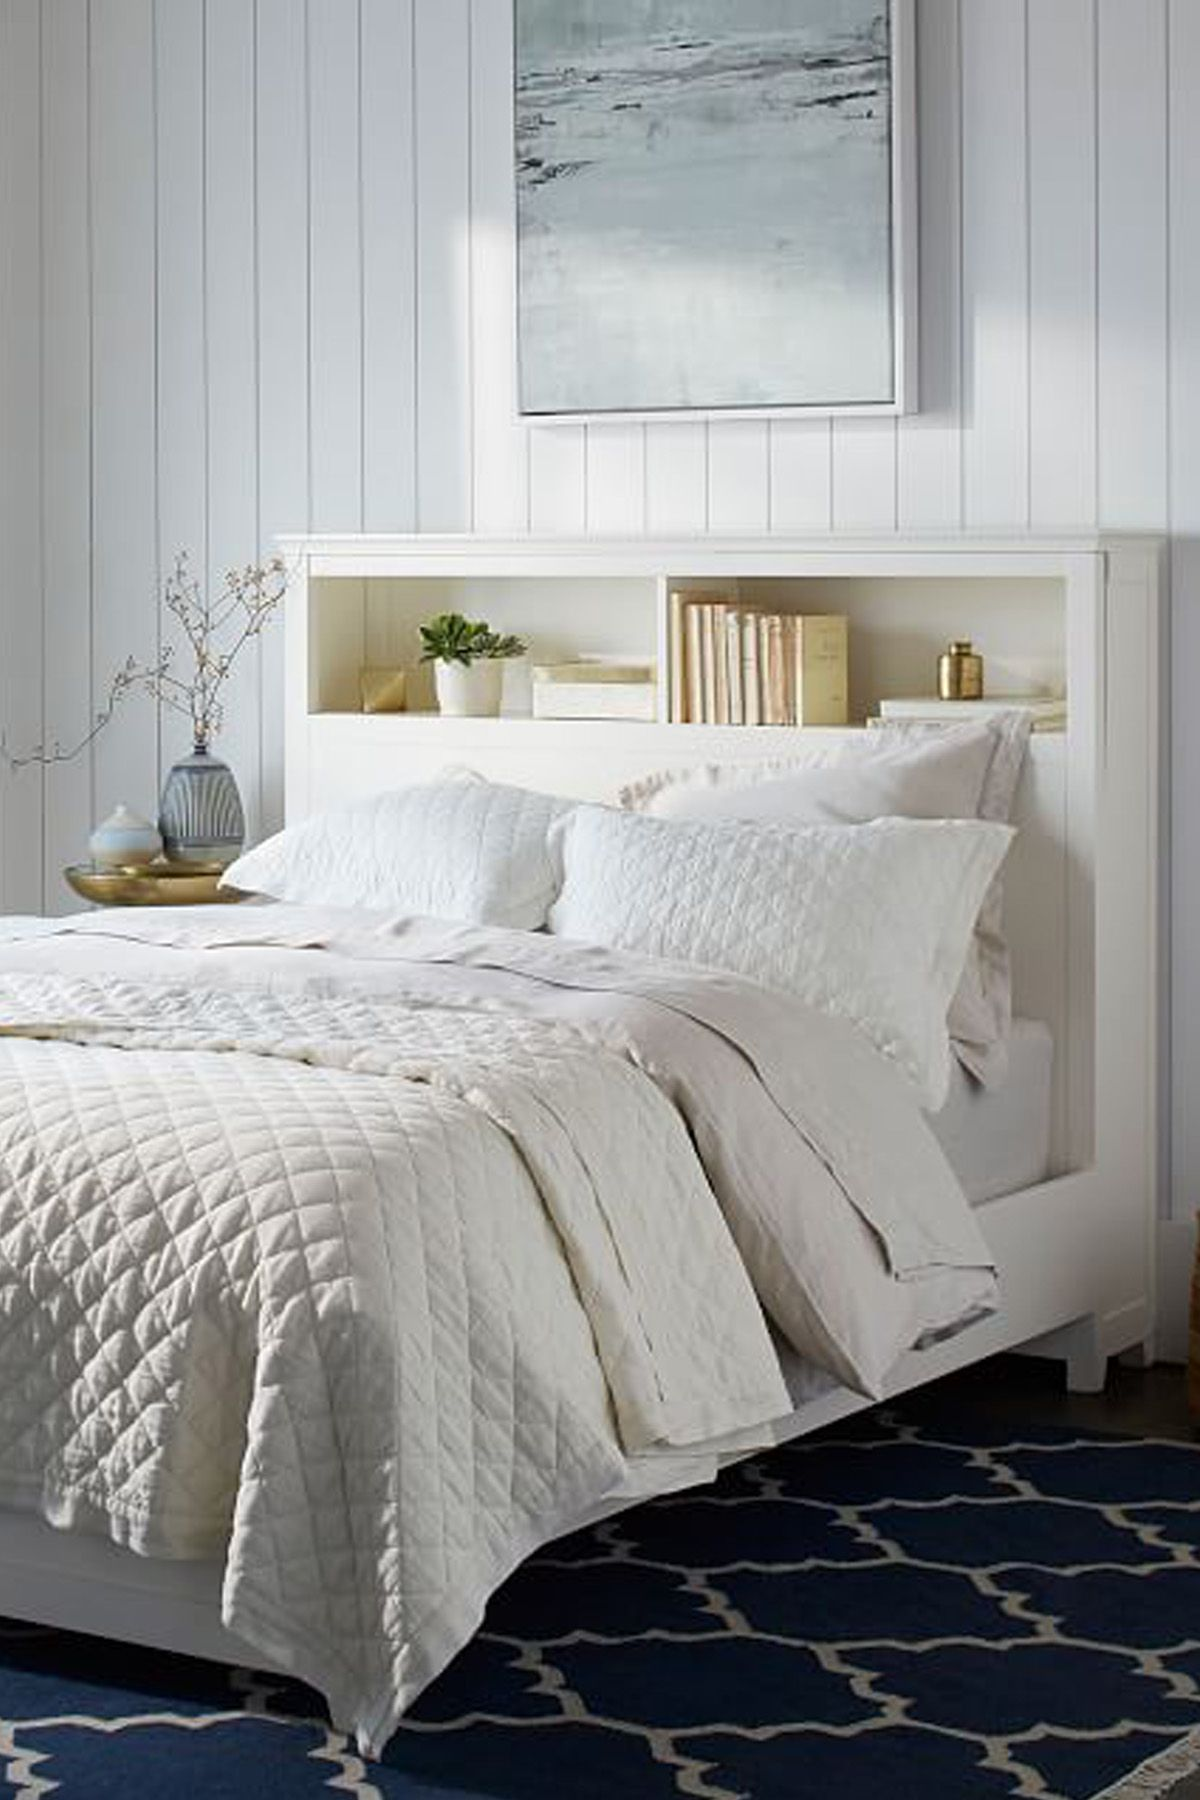 20 best headboard ideas unique designs for bed headboards rh housebeautiful com pictures of modern headboards pictures of headboards for beds